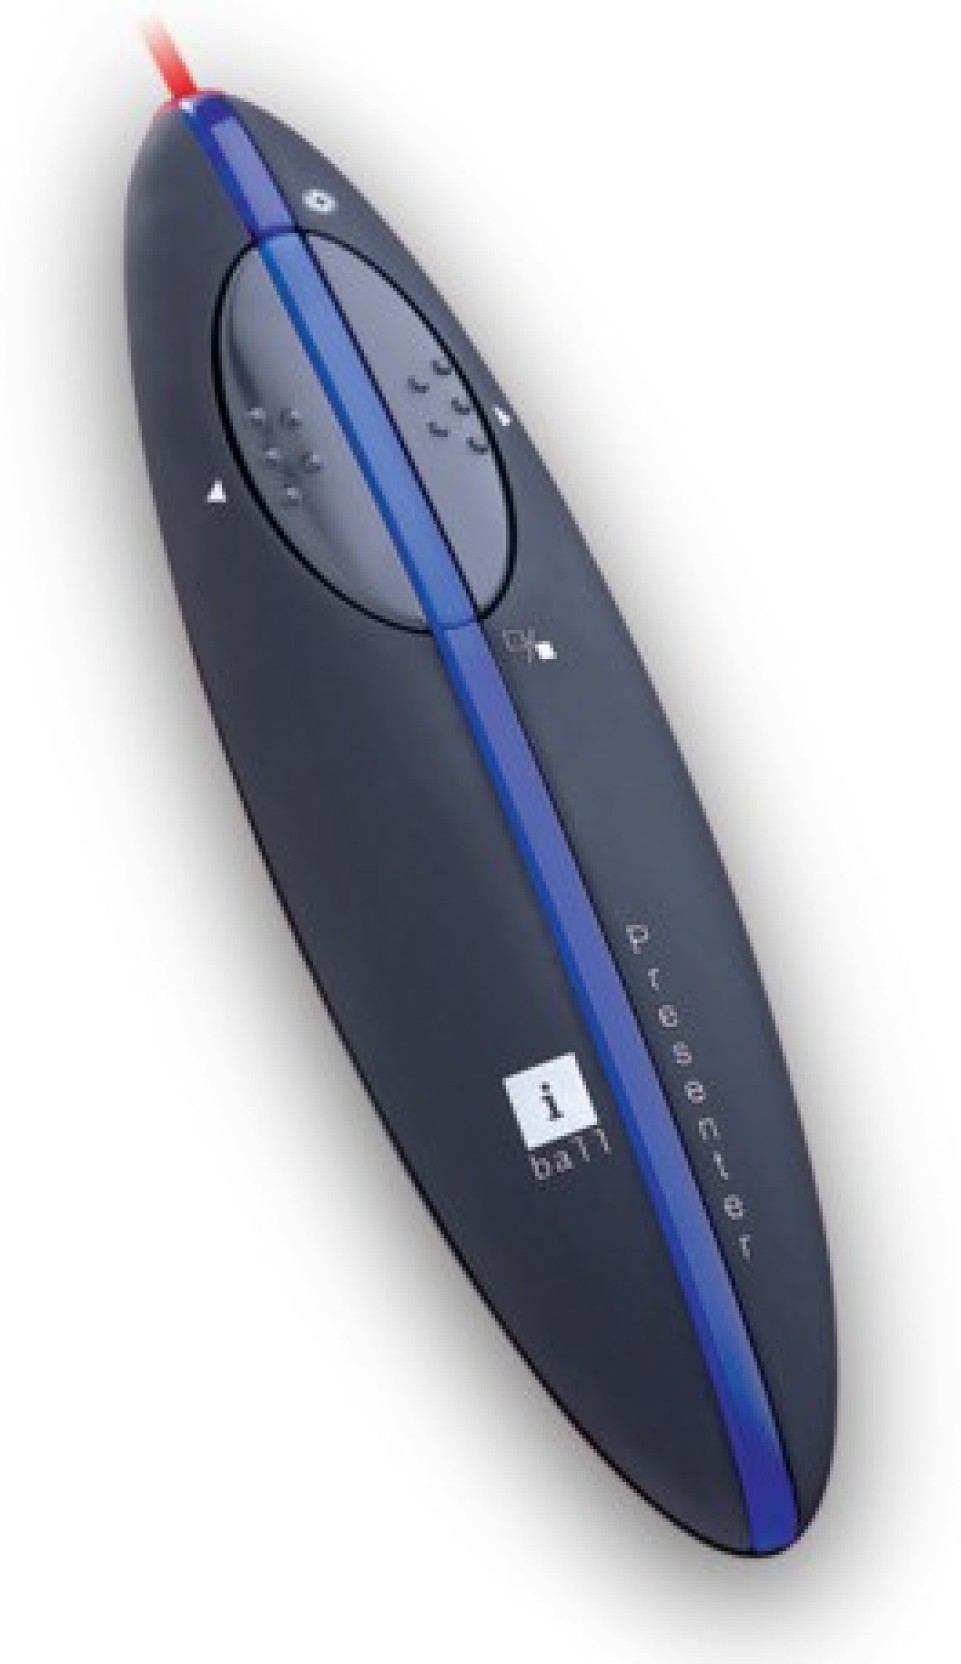 Iball 24ghz Wireless Presenter Price Logitech R400 Pointer Home